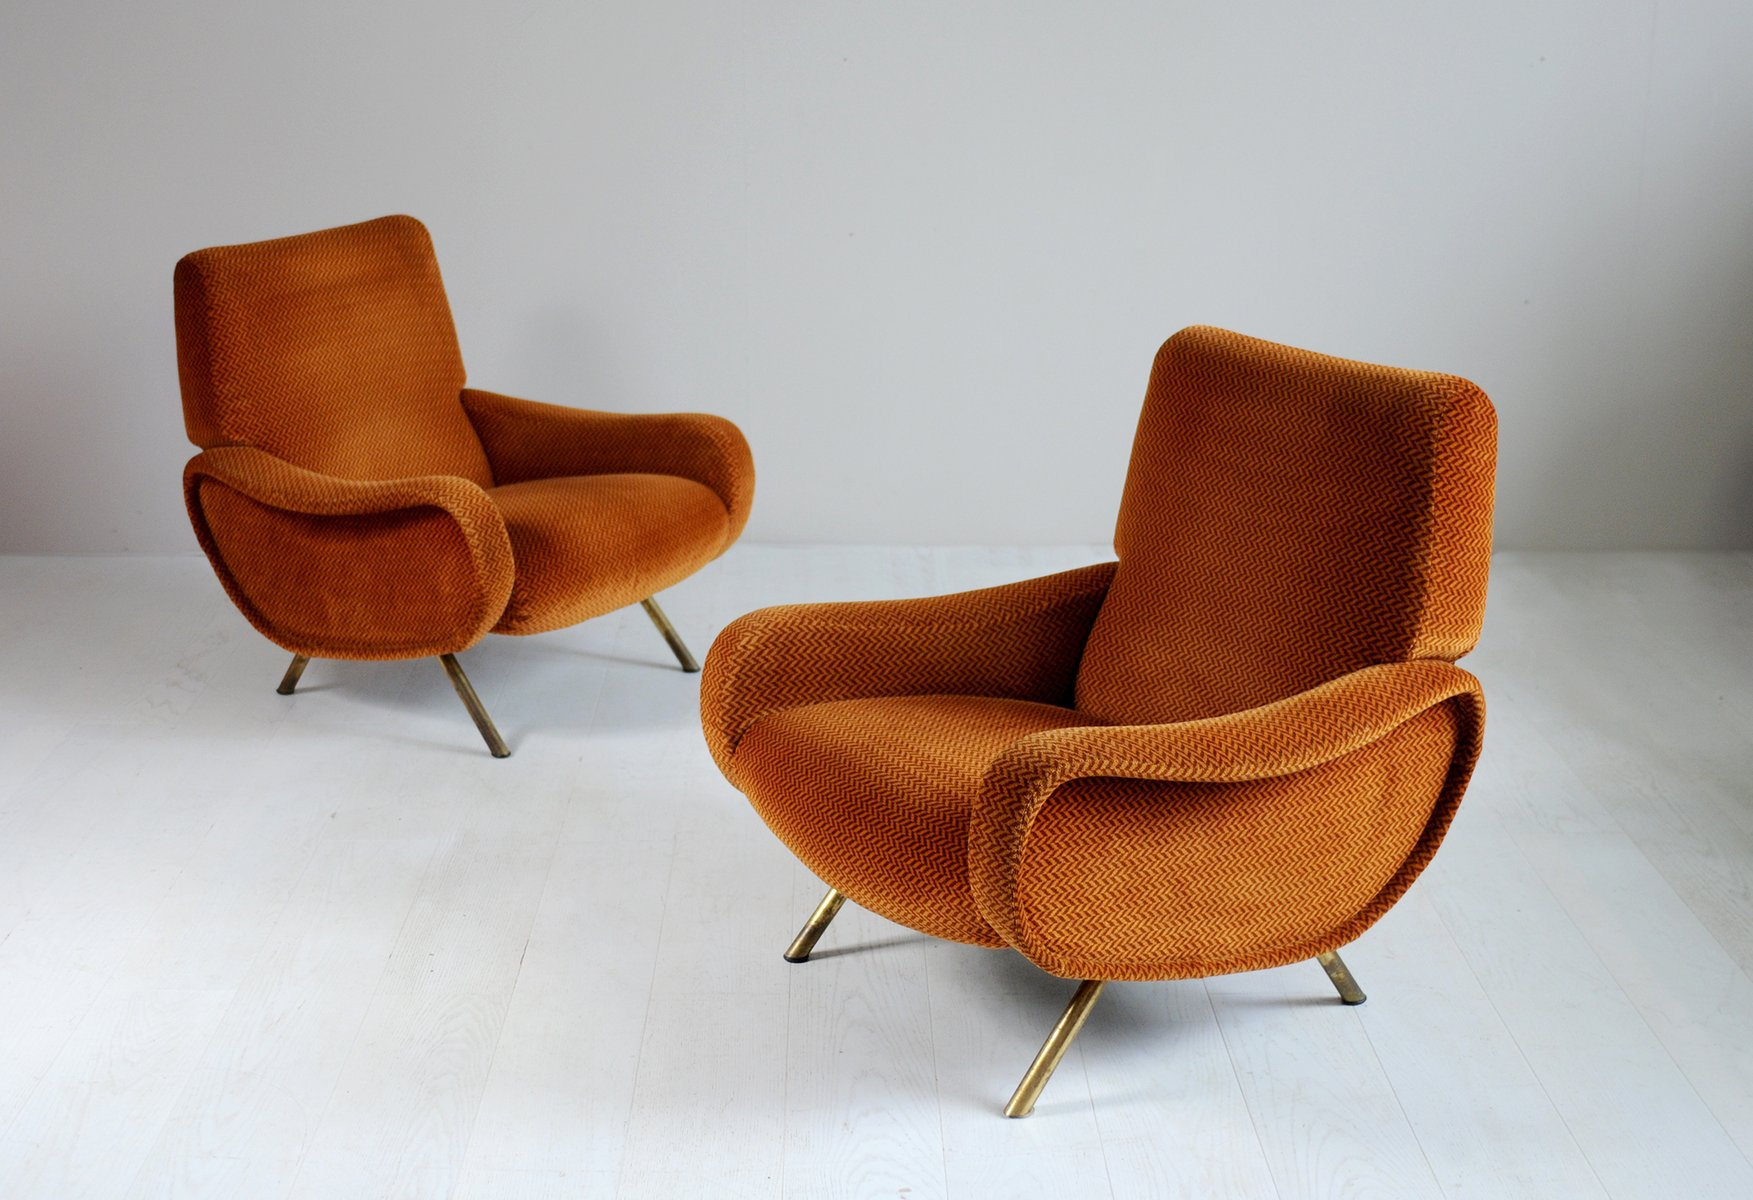 Italian Triennale Sofa Lady Armchairs By Marco Zanuso For Arflex 1950s Set Of 3 For Sale At Pamono